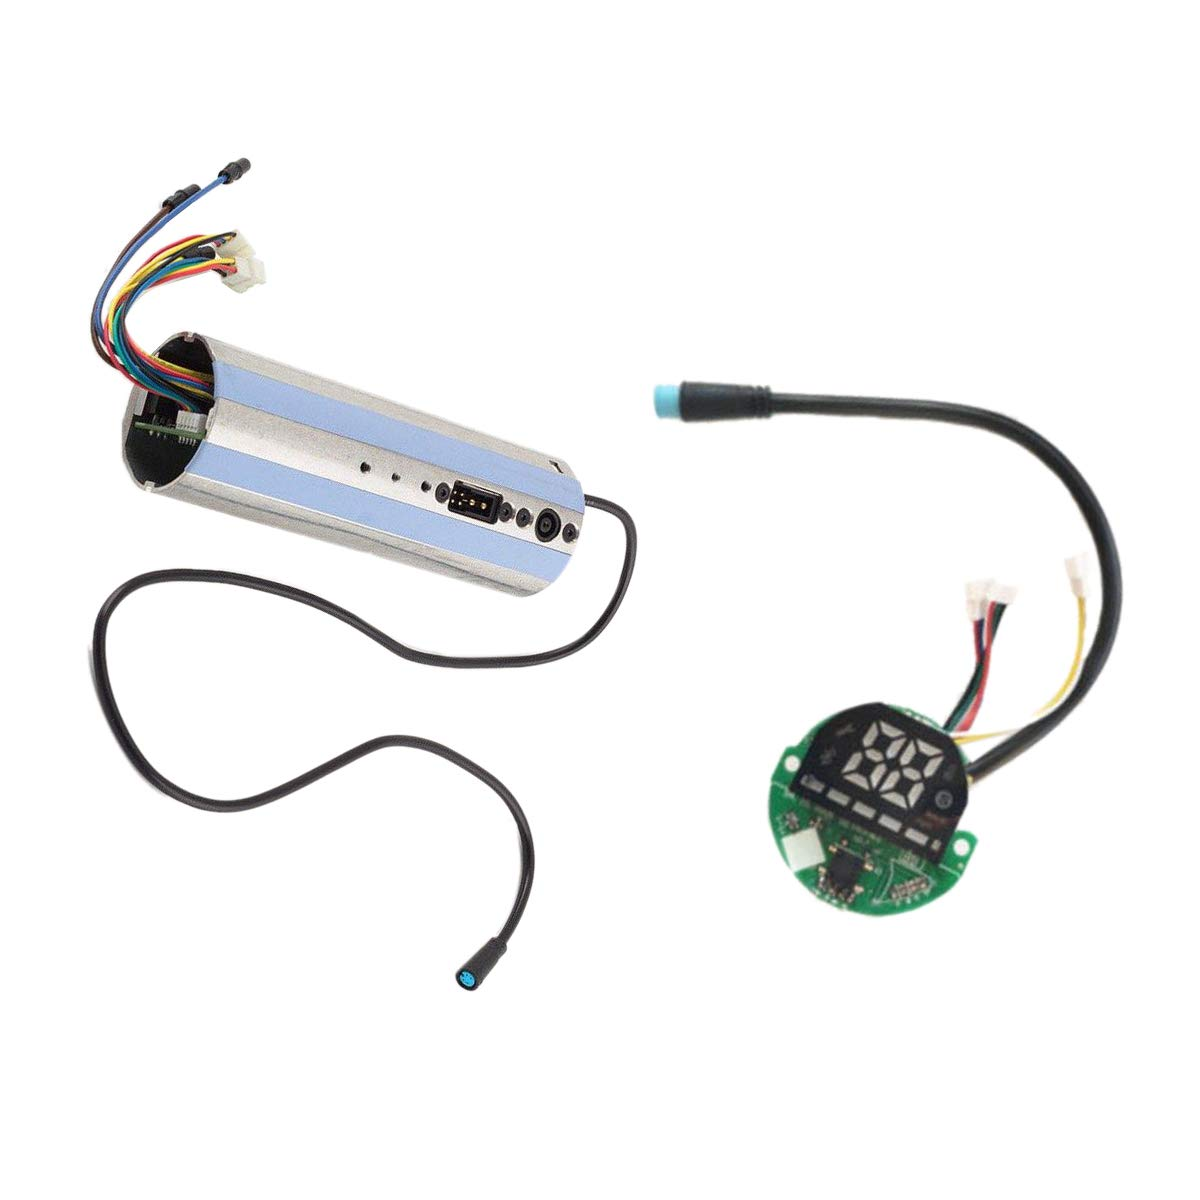 SODIAL Electric Scooter Controller Bluetooth Board Scooter Parts for Ninebot Es1/ Es2/ Es4